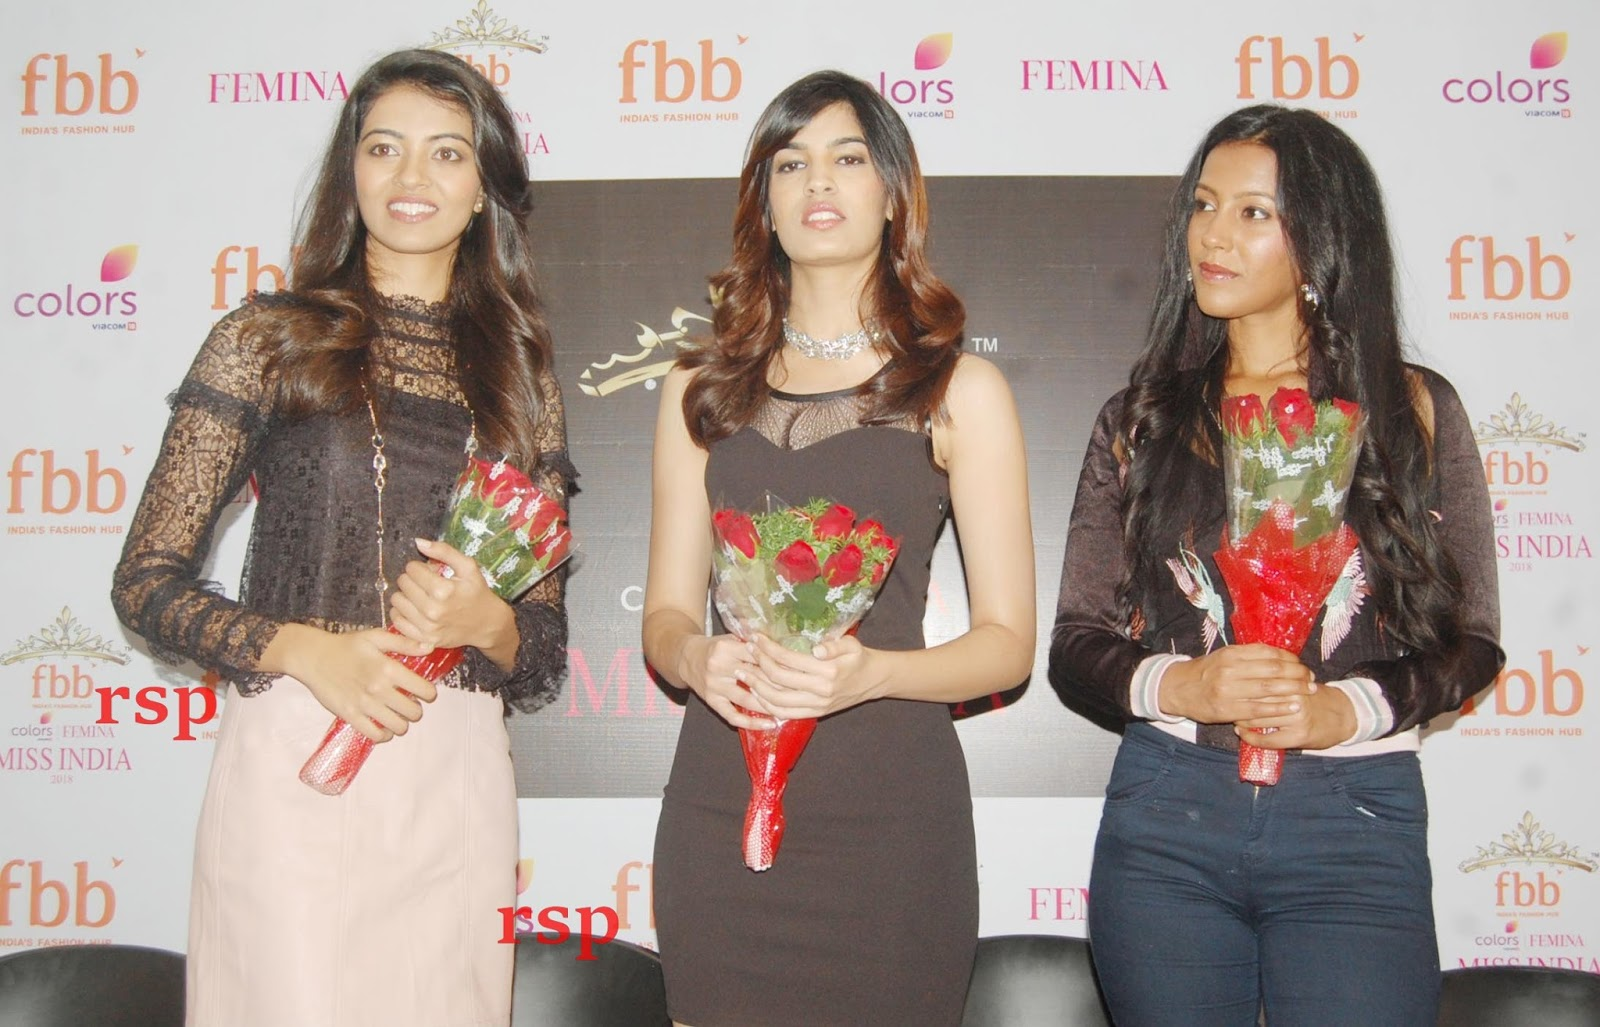 453dcb2a4af Andhra Pradesh scouts its top 3 girls at the fbb Colors Femina Miss India  2018 - rspnetwork.in